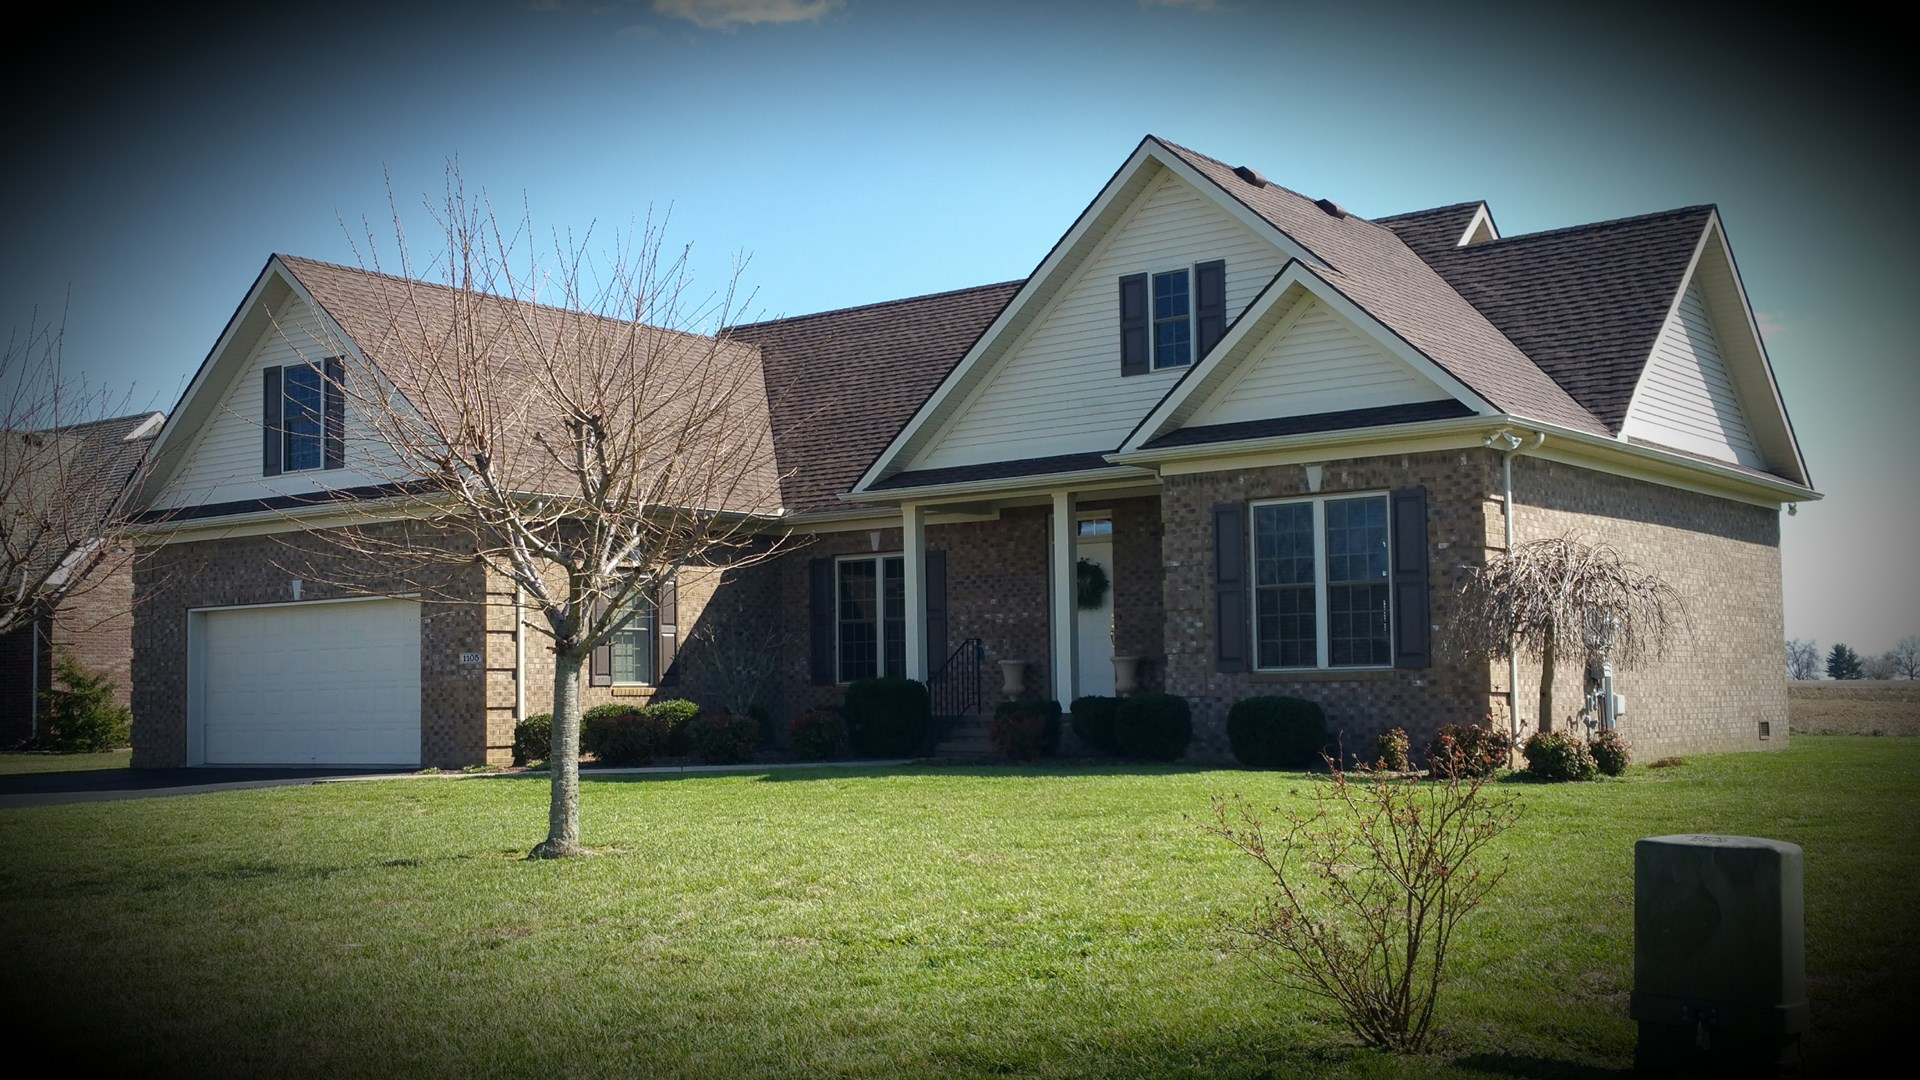 3 Bedroom 2 Bath Home for sale in Franklin Ky.